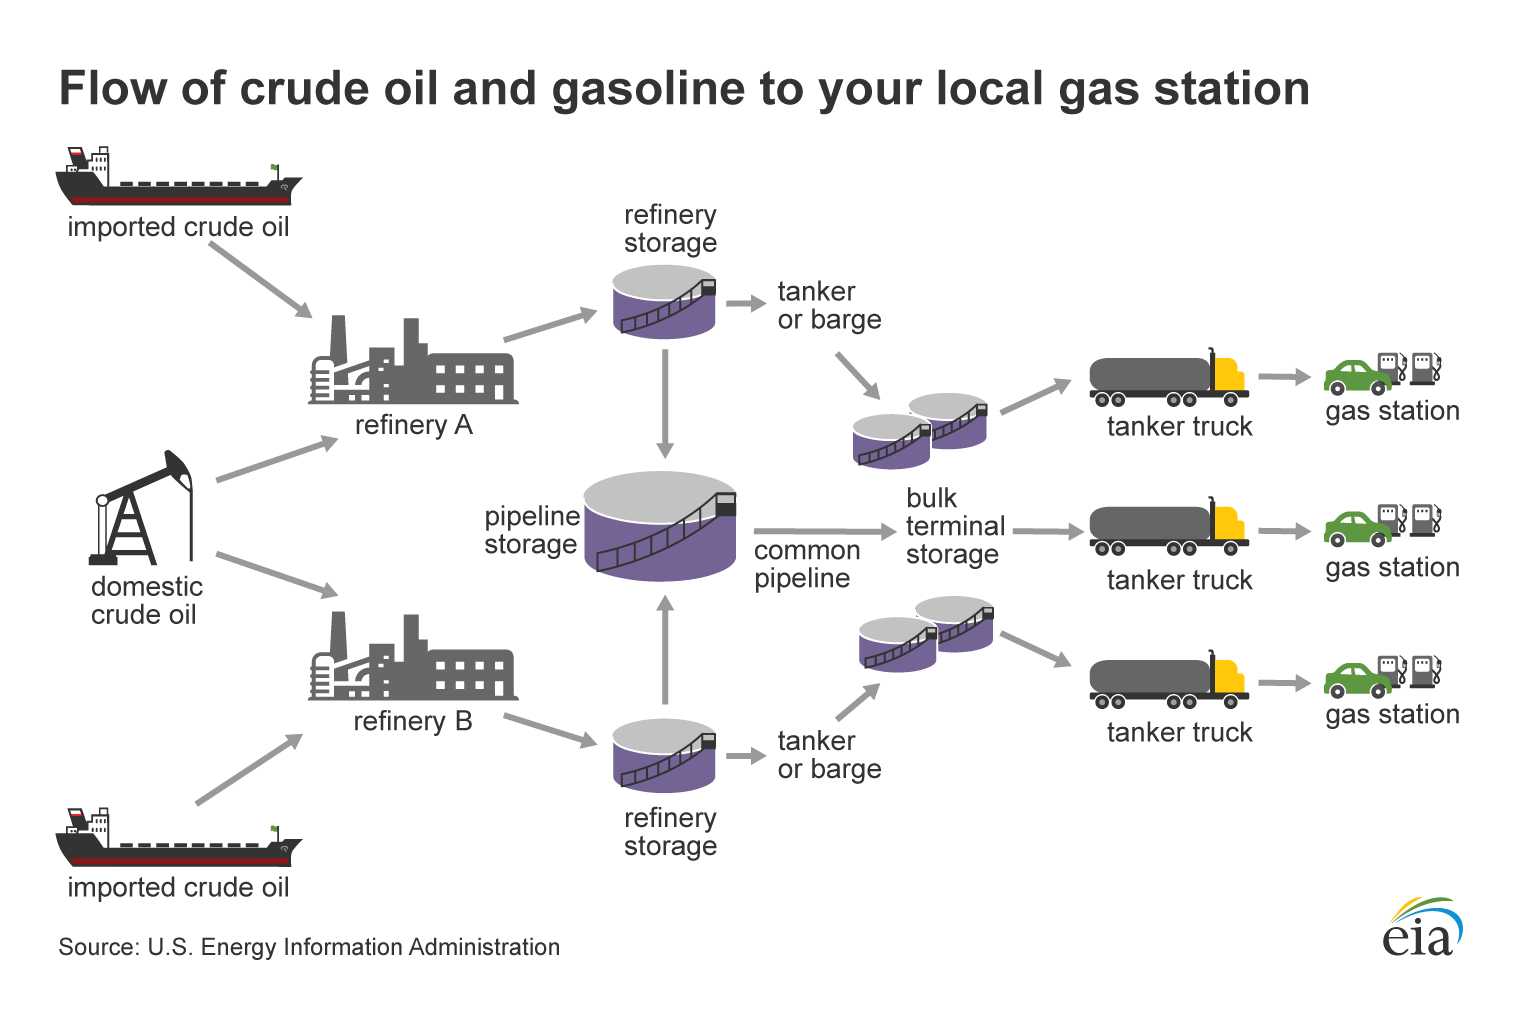 A graphic illustration showing the flow of imported crude oil from the tanker to the gas station.